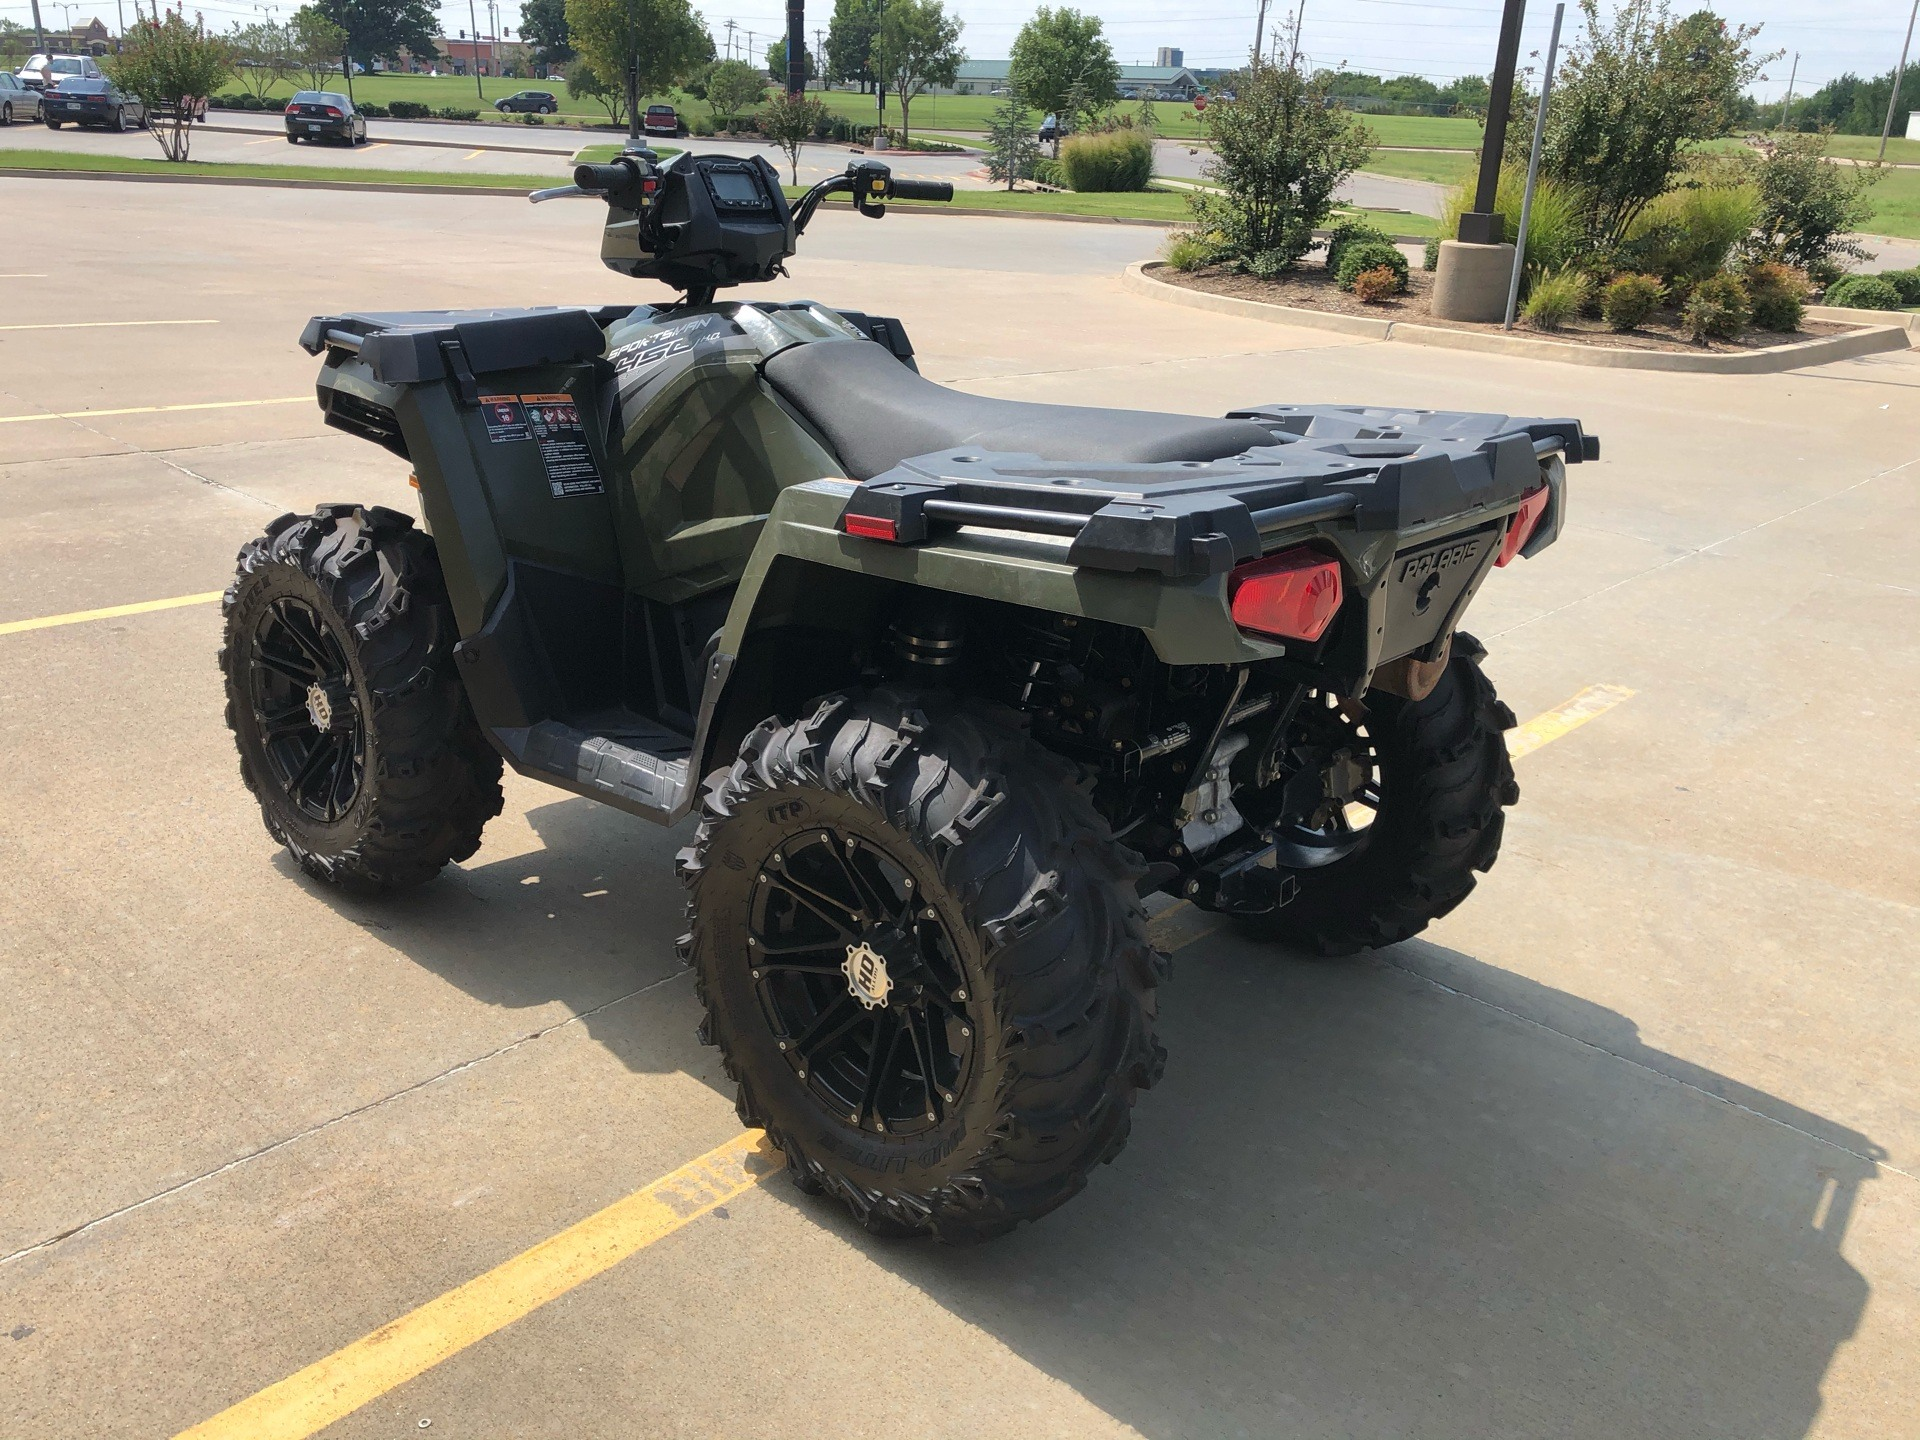 2019 Polaris Sportsman 450 H.O. in Norman, Oklahoma - Photo 6